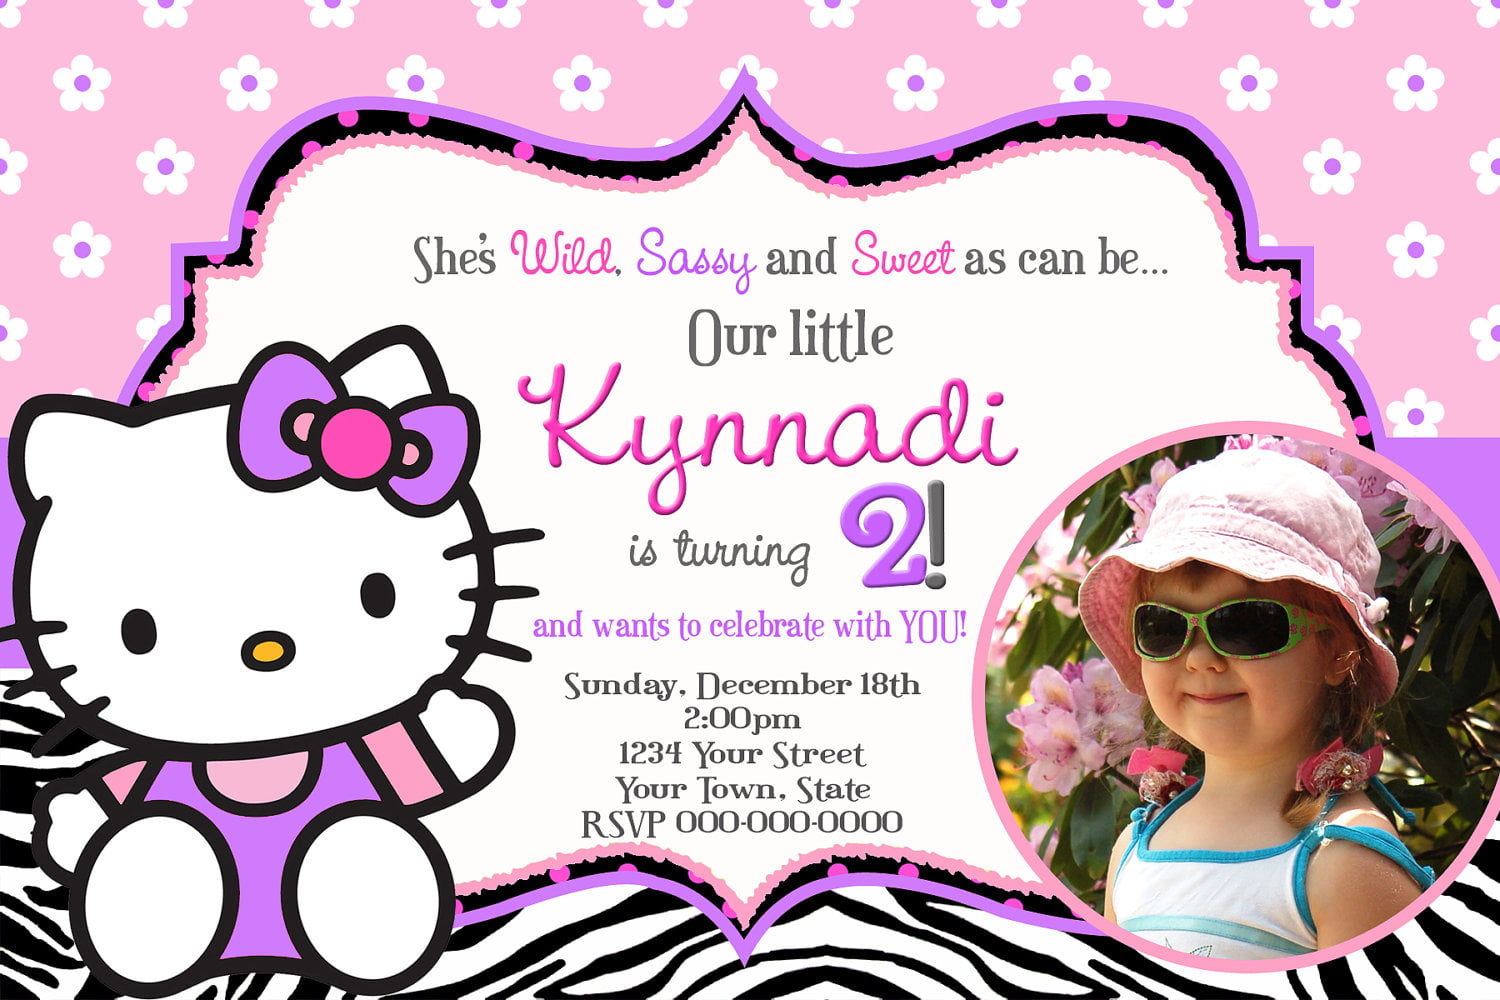 invitation card design hello kitty cover letter templates invitation card design hello kitty smilebox invitations collages slideshows scrapbooks hello kitty birthday invitations drevio invitations